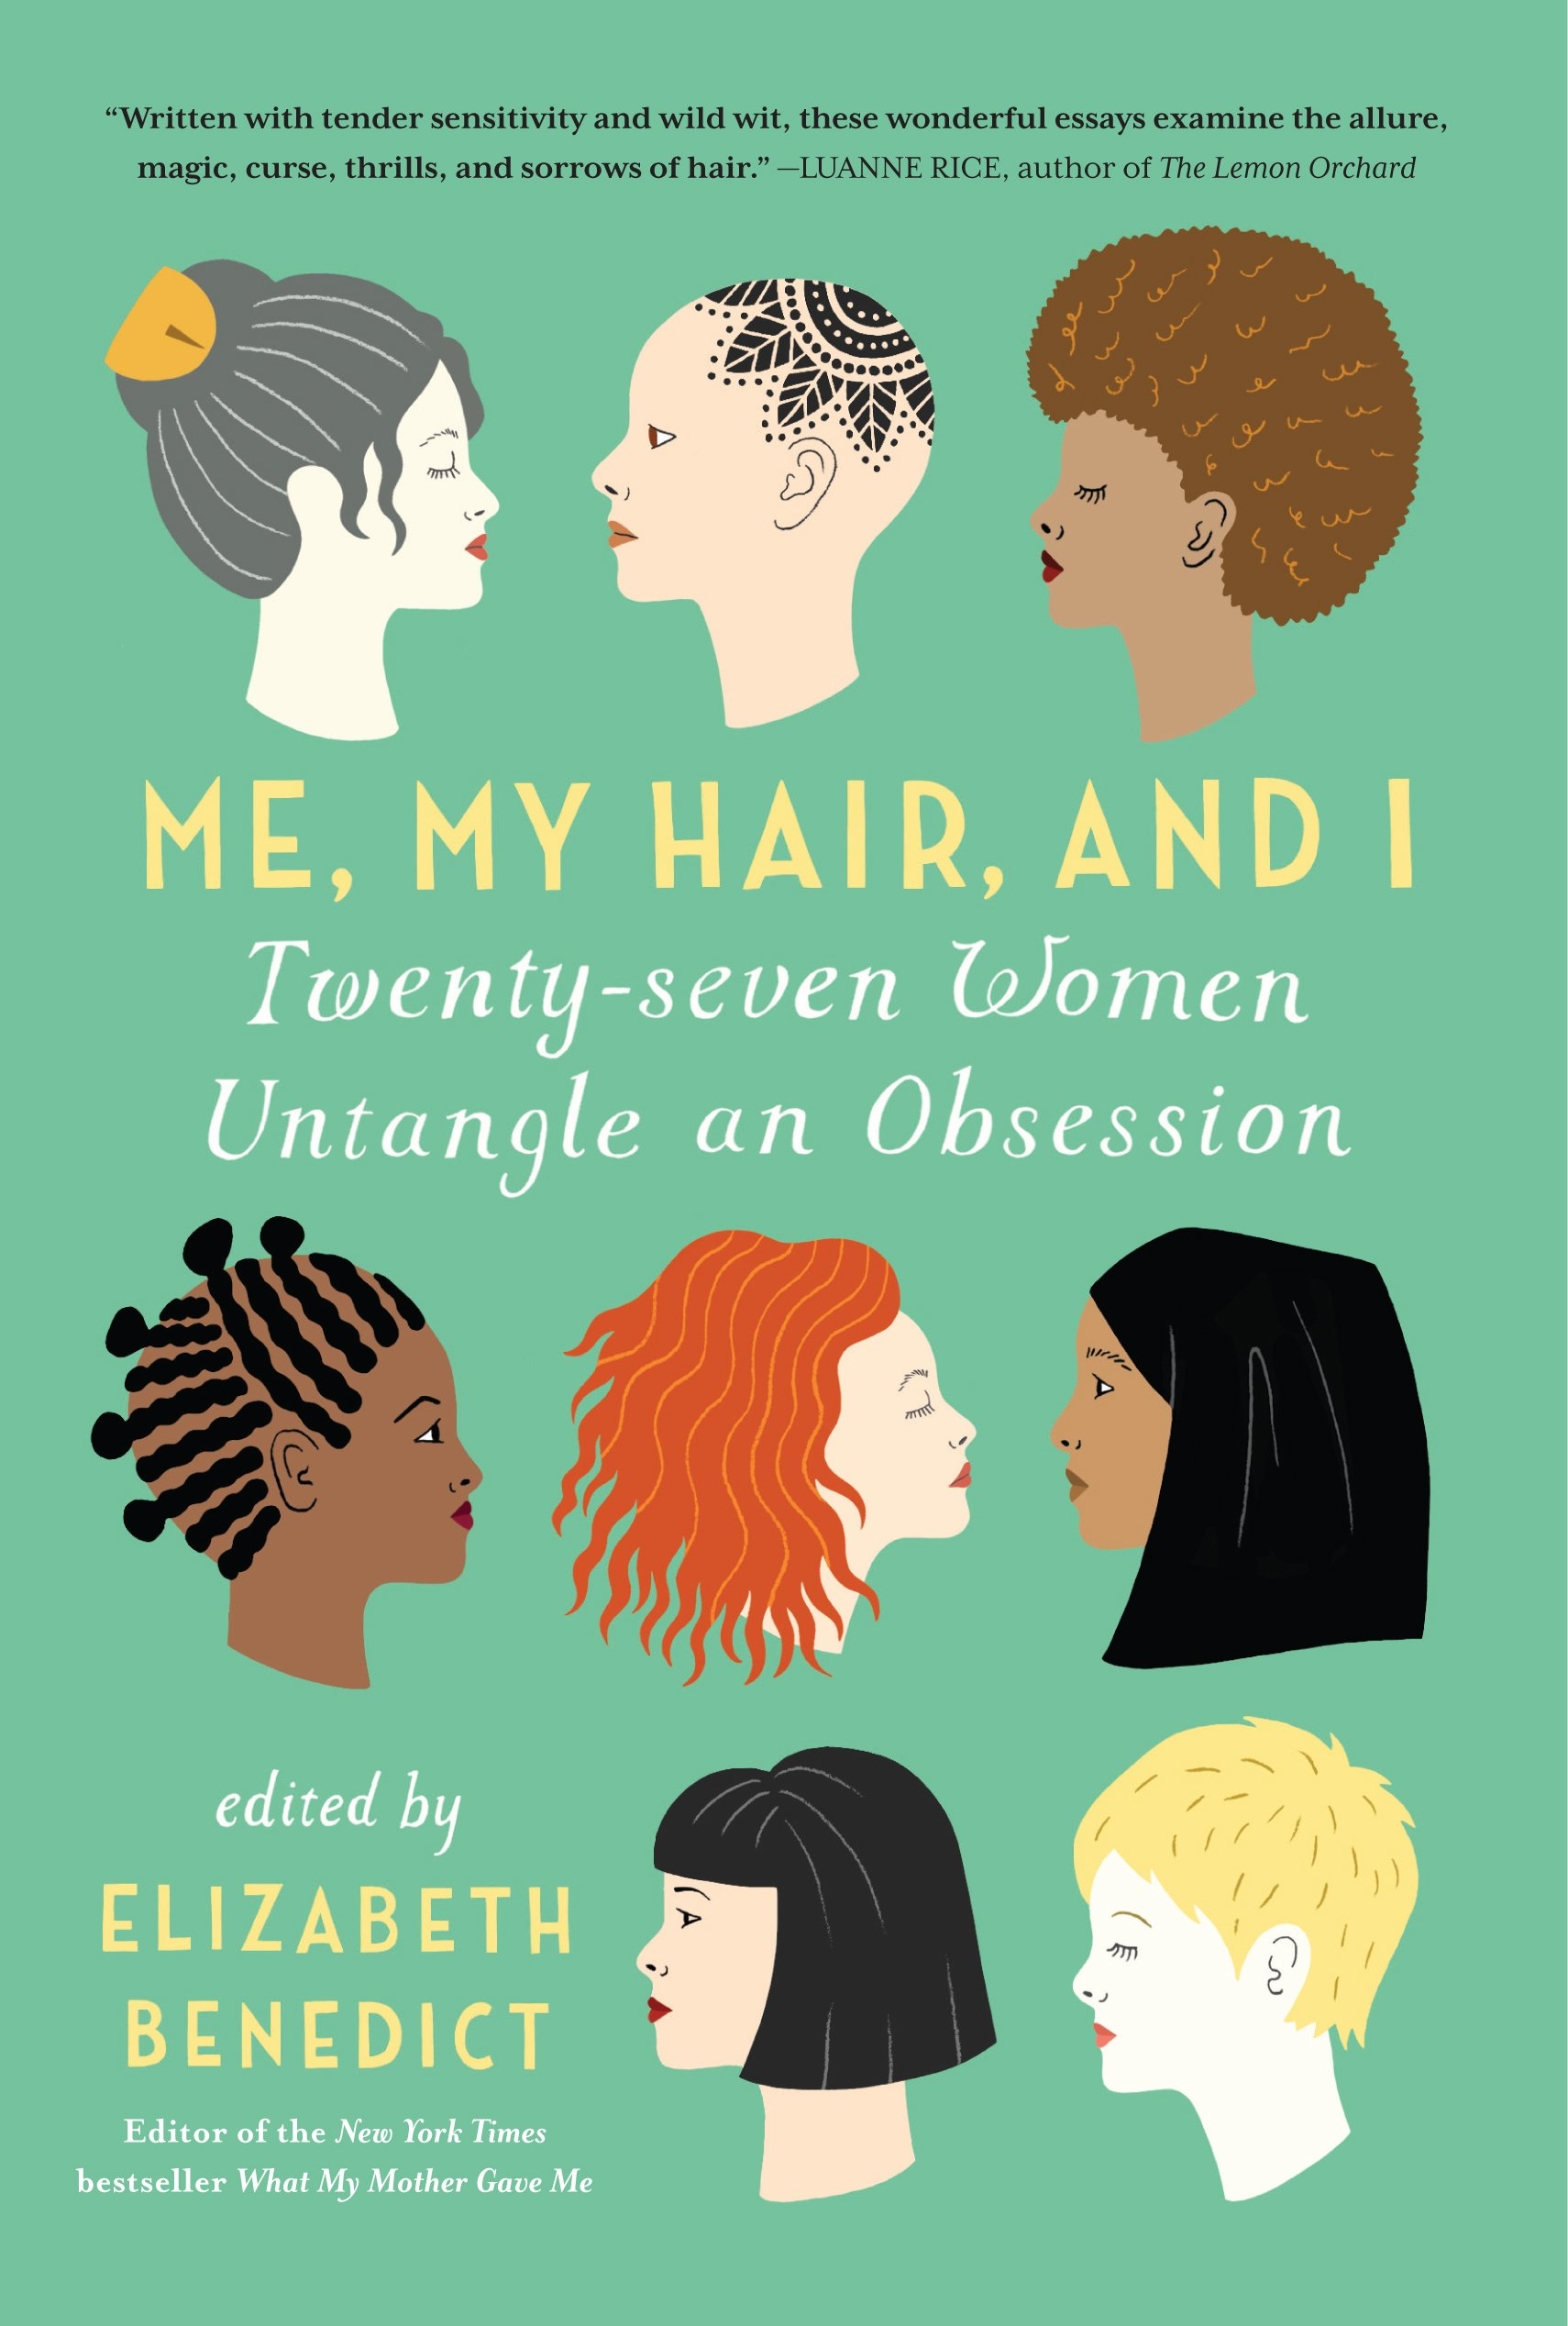 Buy Me, My Hair, And I Book Online At Low Prices In India  Me, My Hair,  And I Reviews & Ratings  Amazon